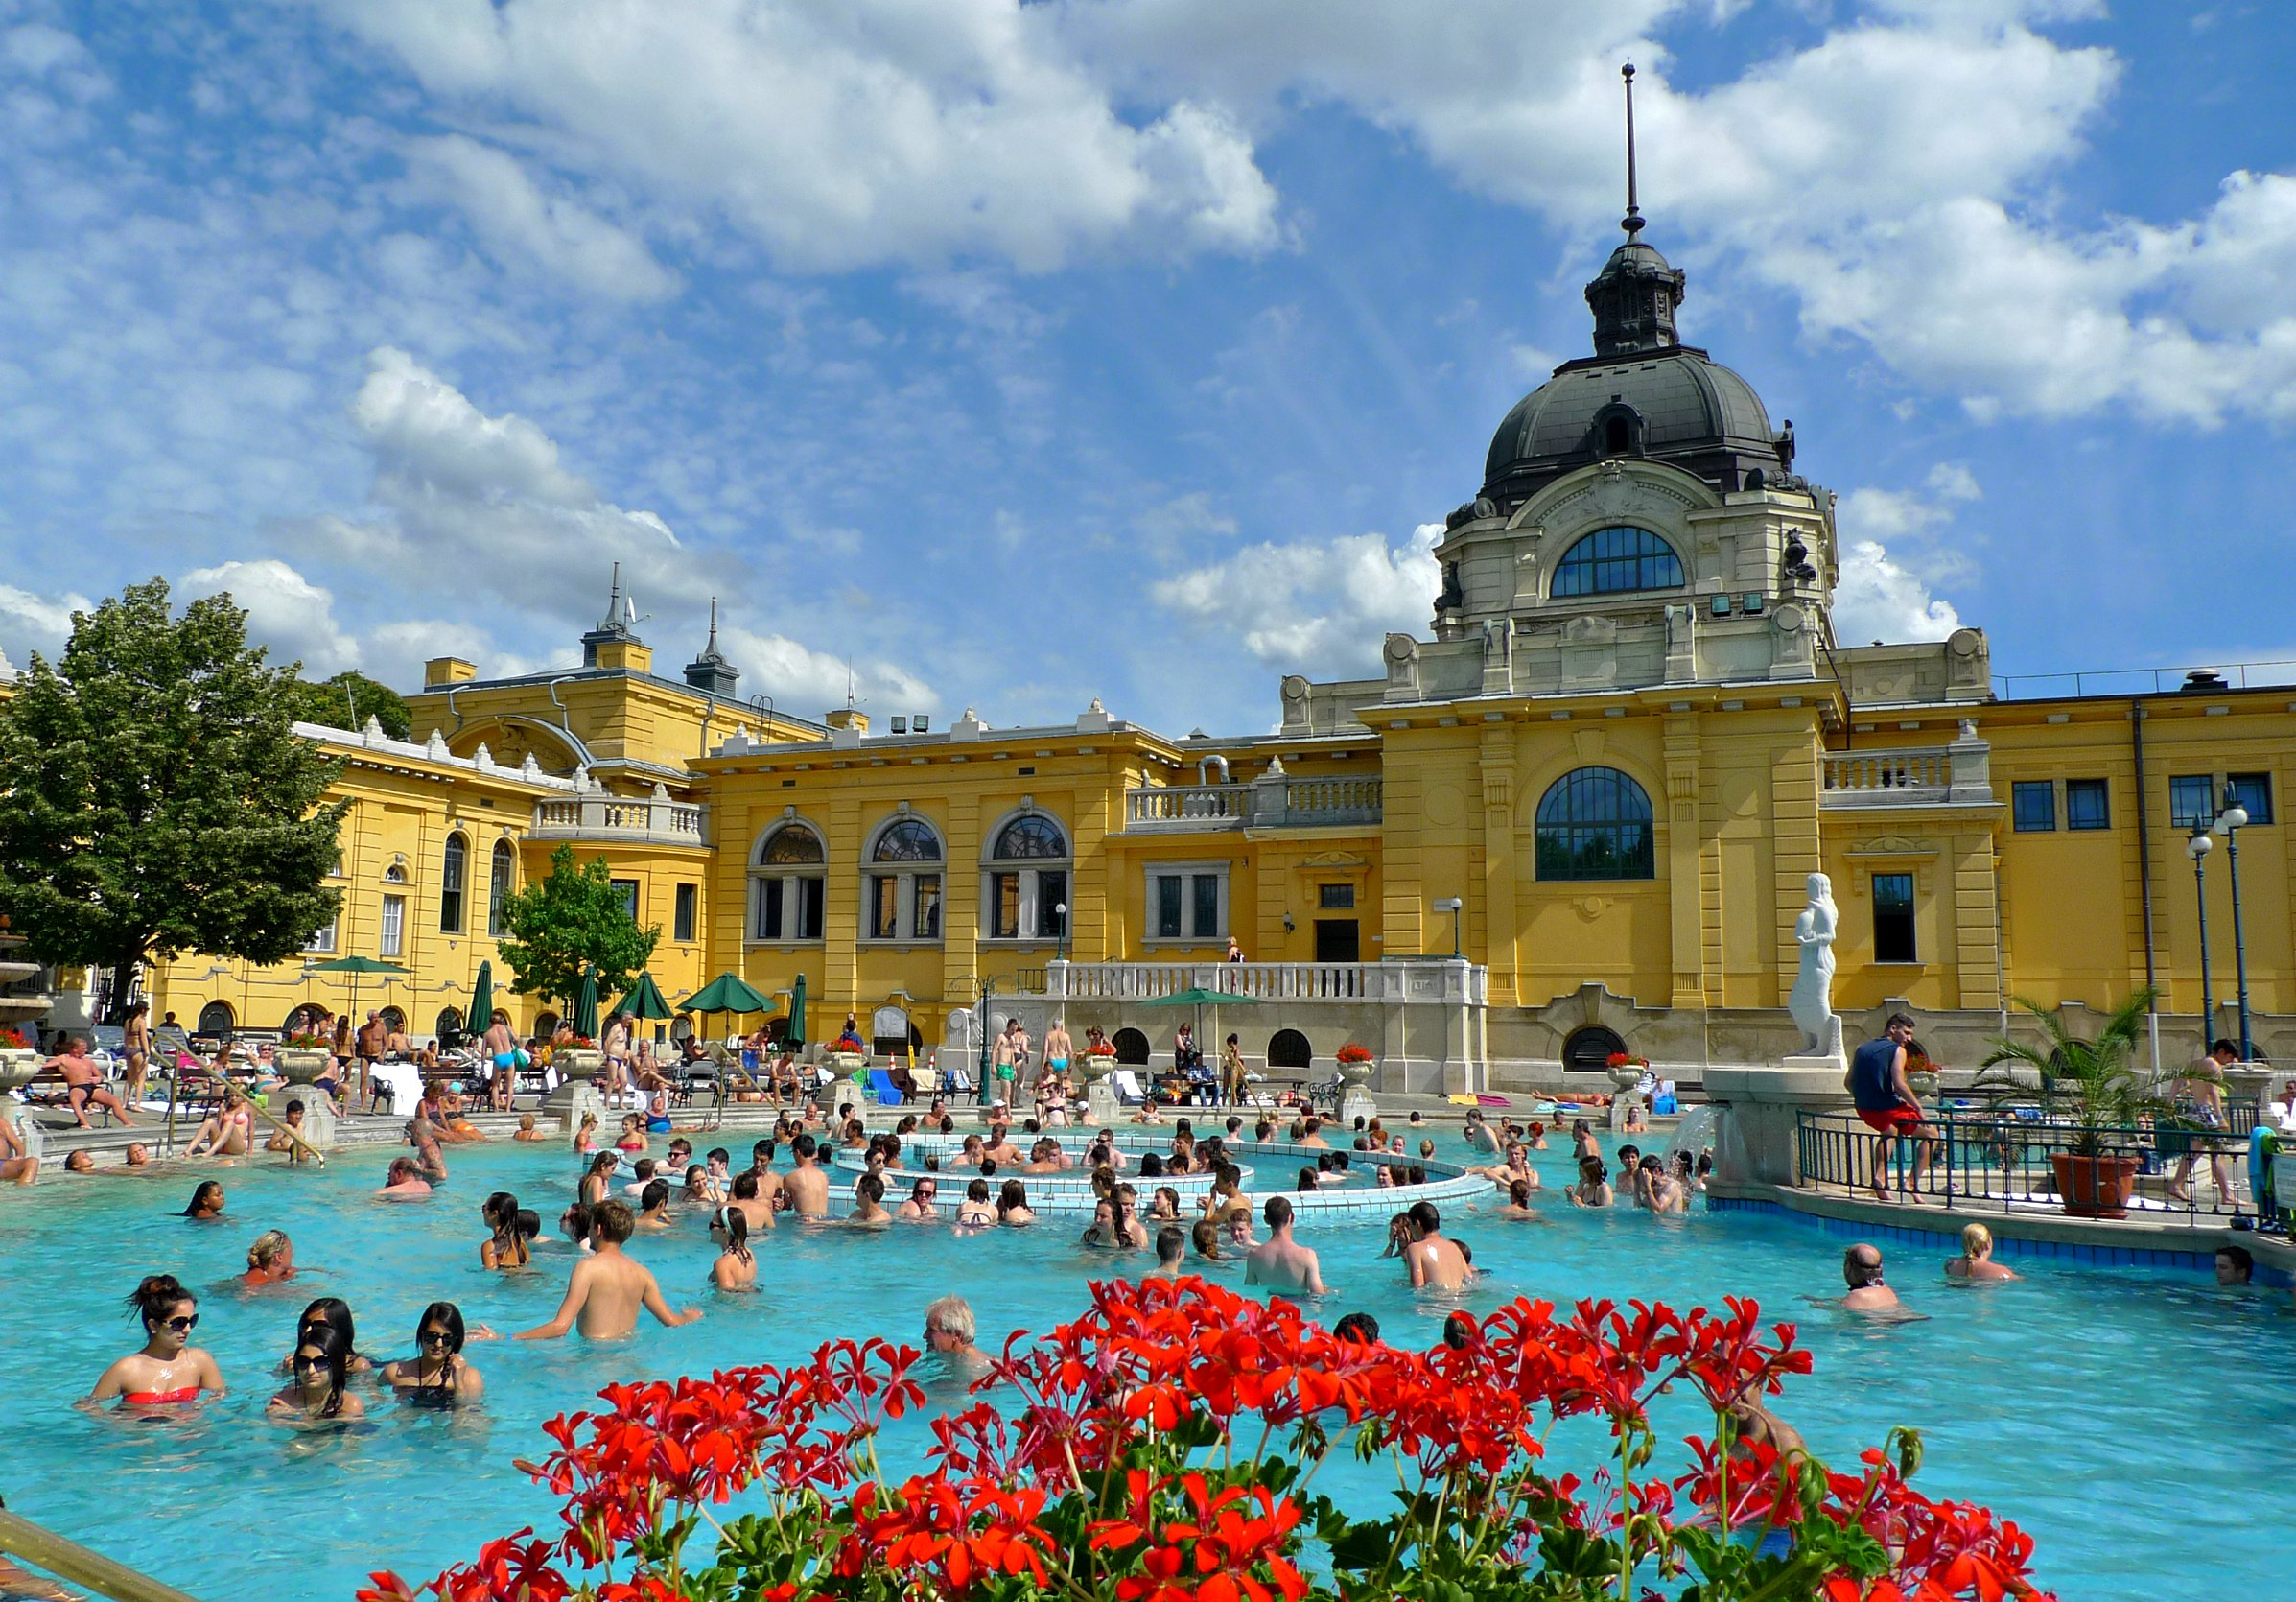 Szechenyi_Baths_and_Pool.JPG